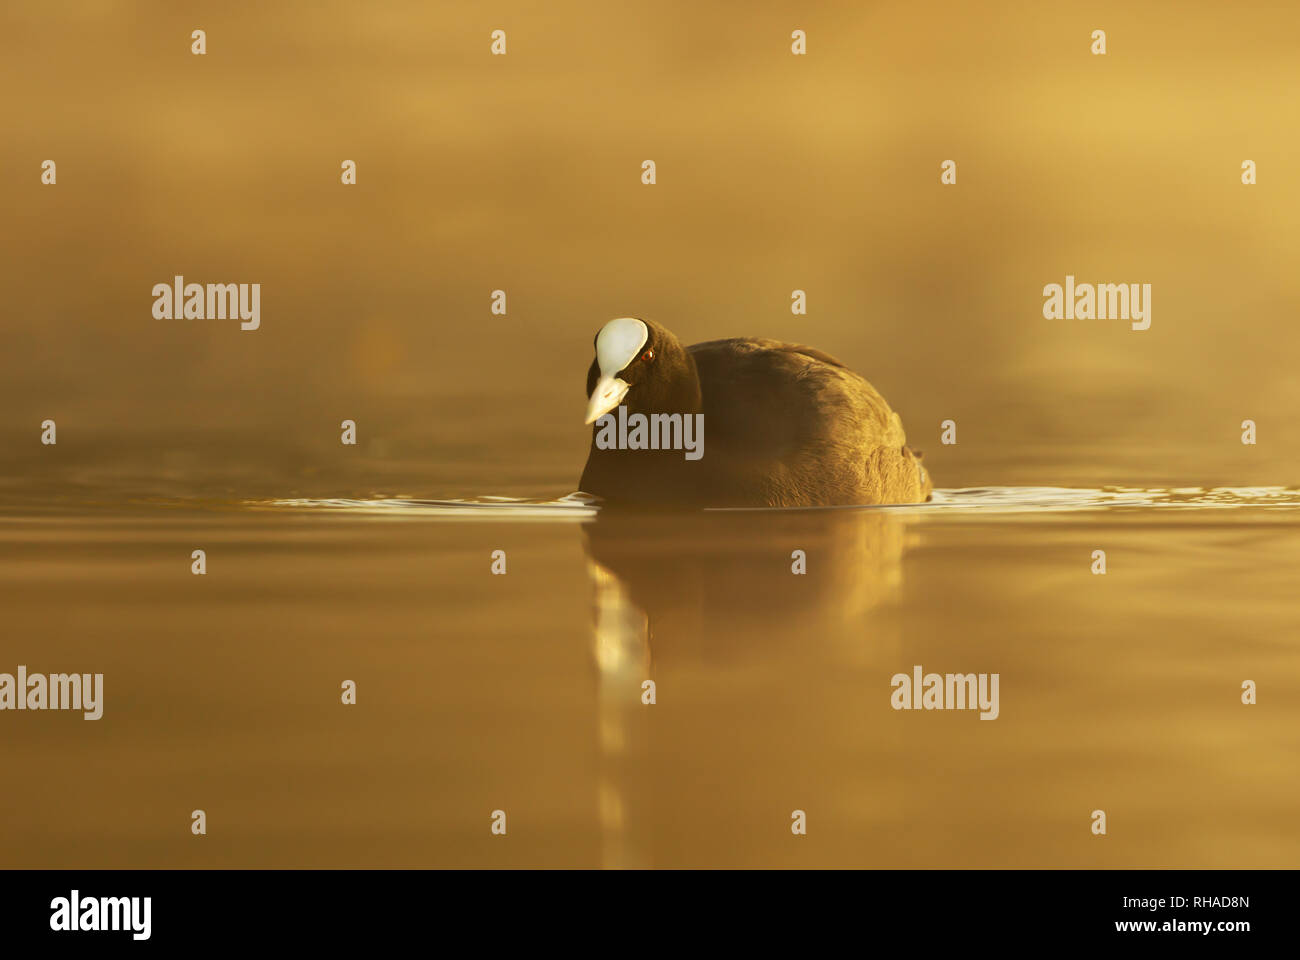 Silhouette of a coot (Fulica atra) in water on a golden misty morning. Stock Photo